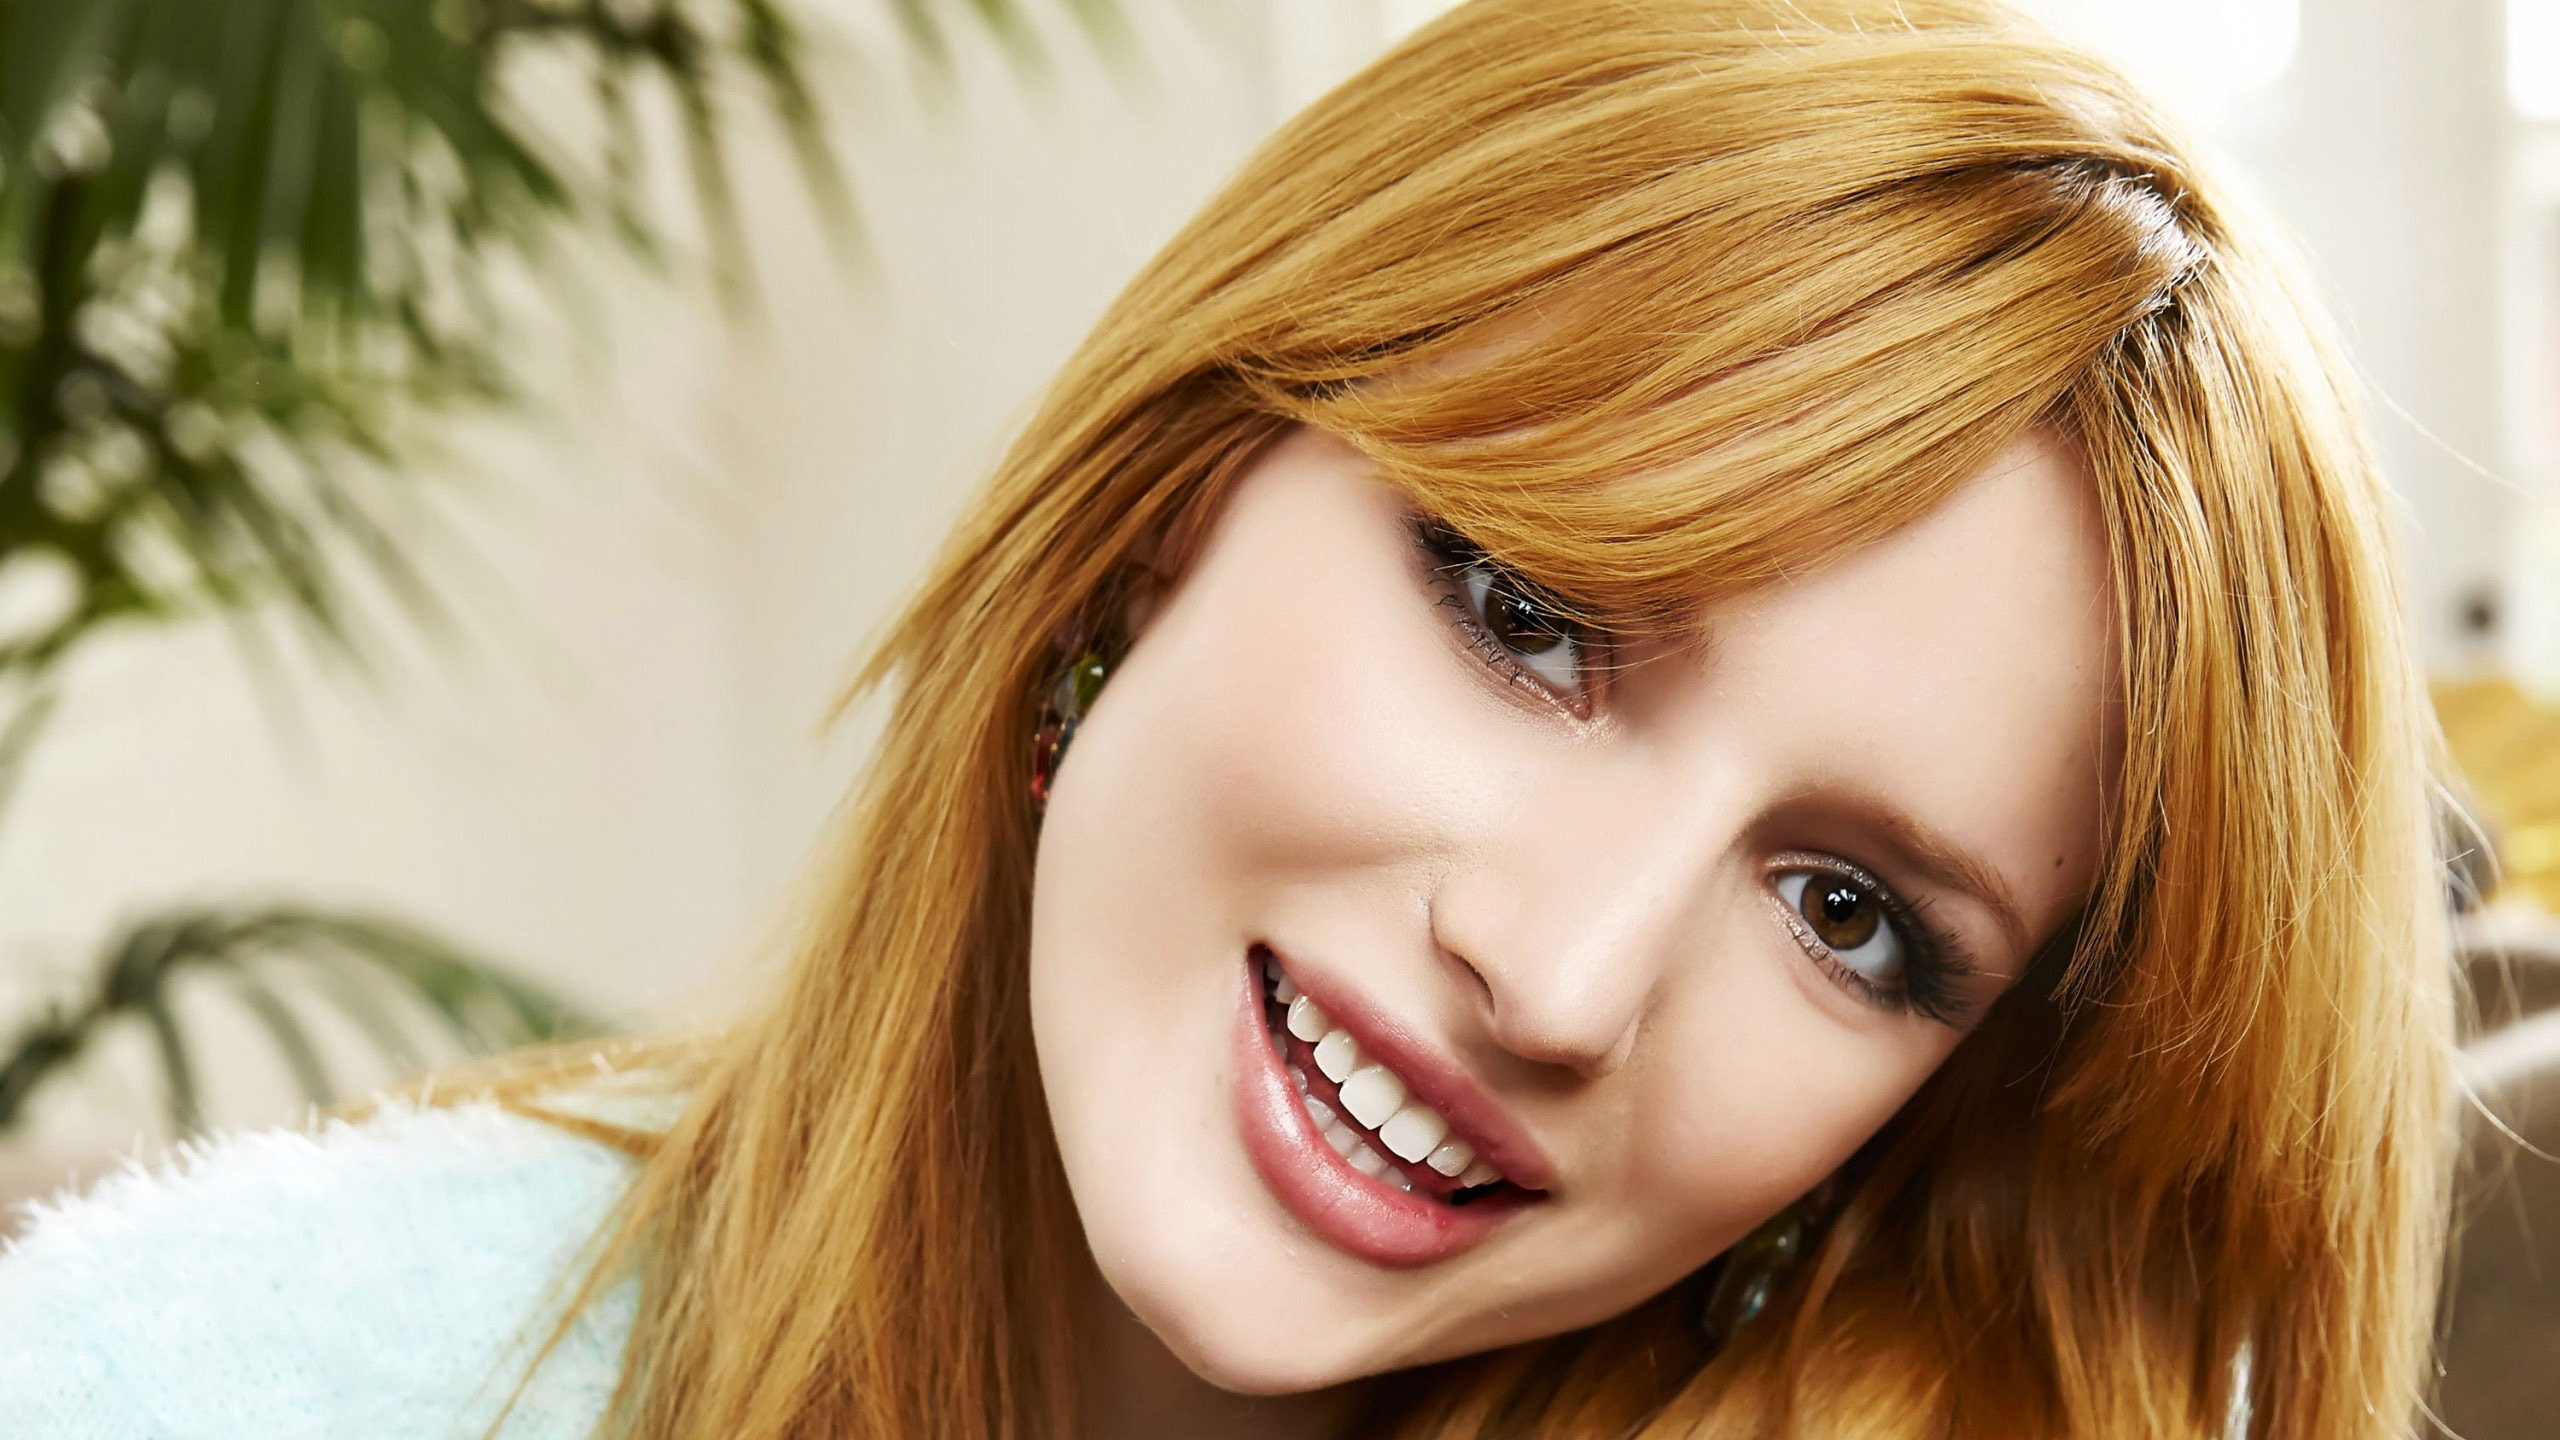 Bella Thorne Actress The Duff Actress and singer Annabella Avery Bella Thorne known for Shake It Up 2010 The Duff 2015 Blended 2014 and Midnight Sun